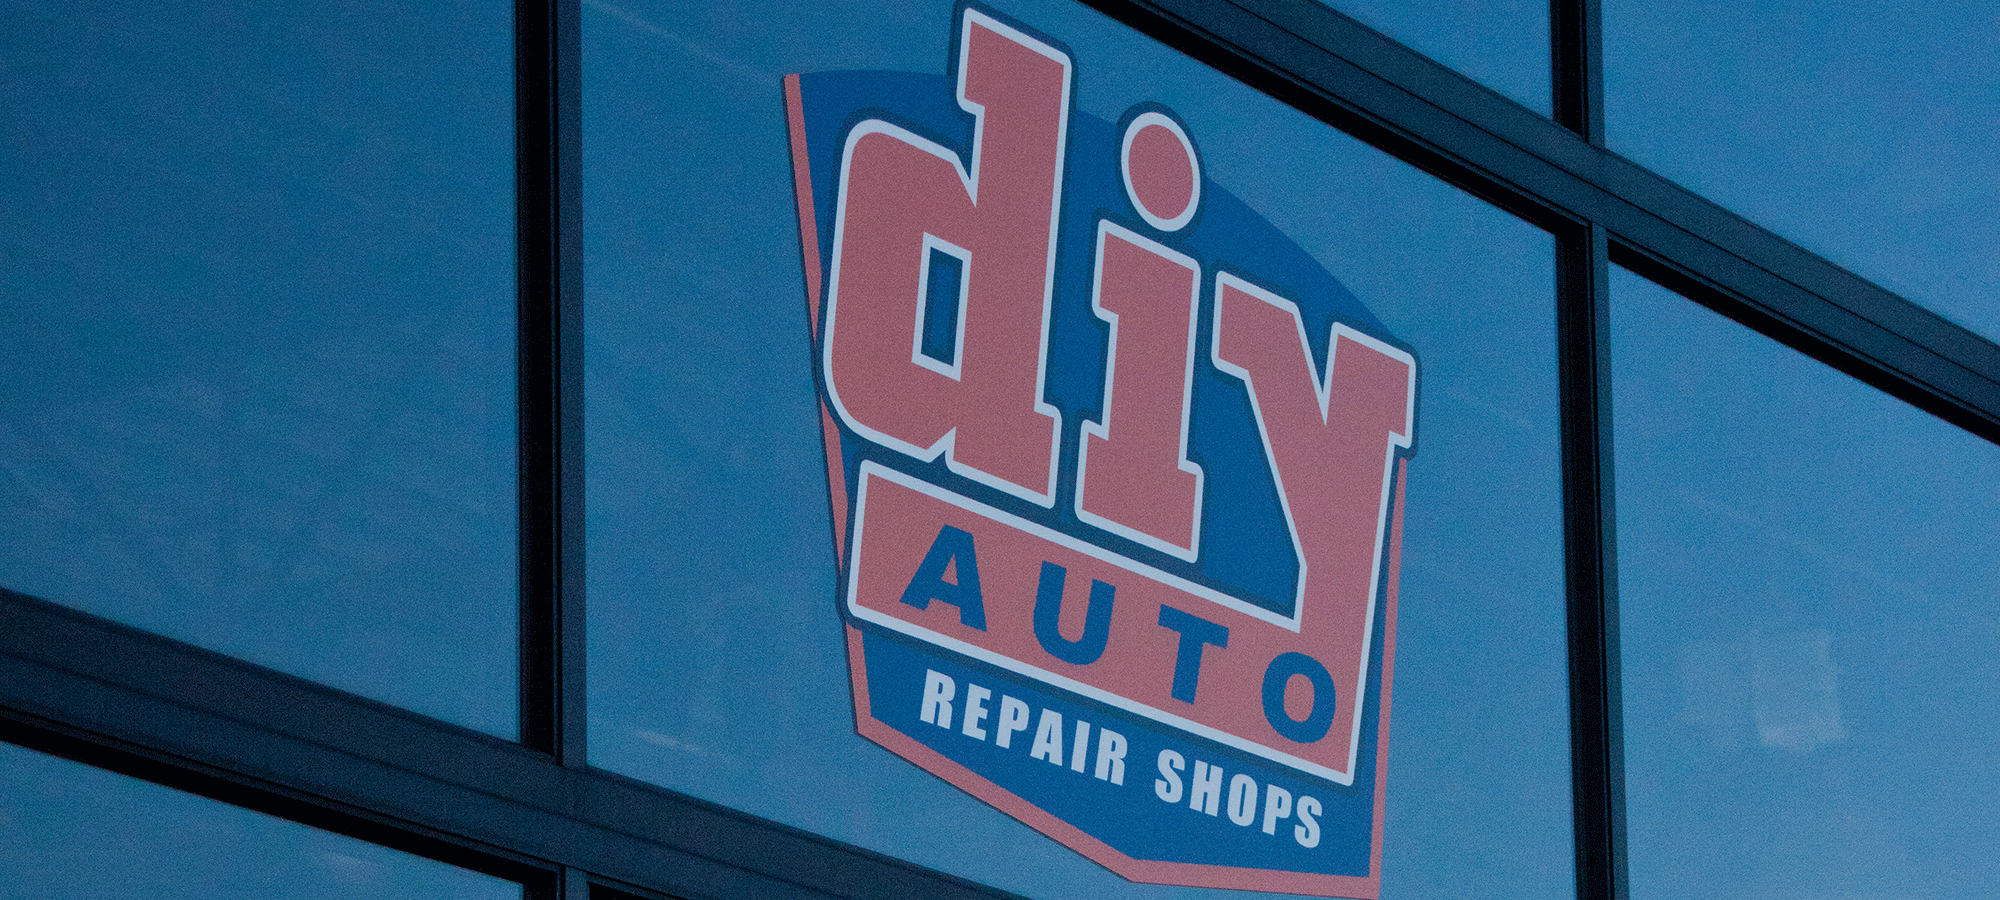 Diy auto repair shops equipped self service garage bays save even more money solutioingenieria Gallery